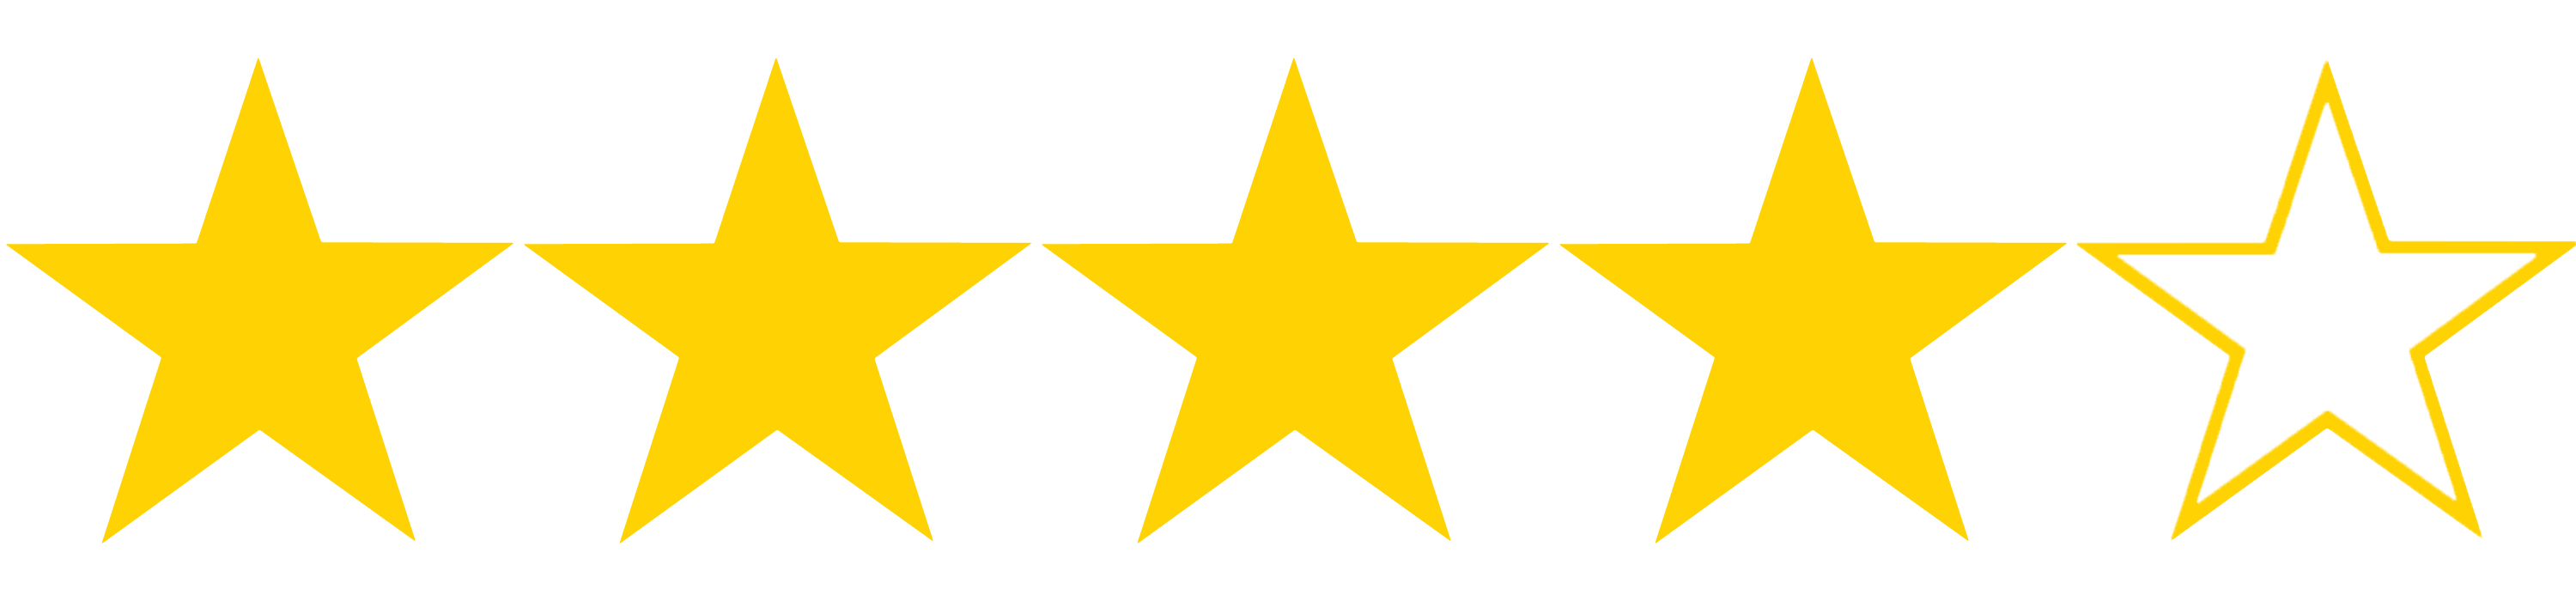 Image result for four stars out of 5